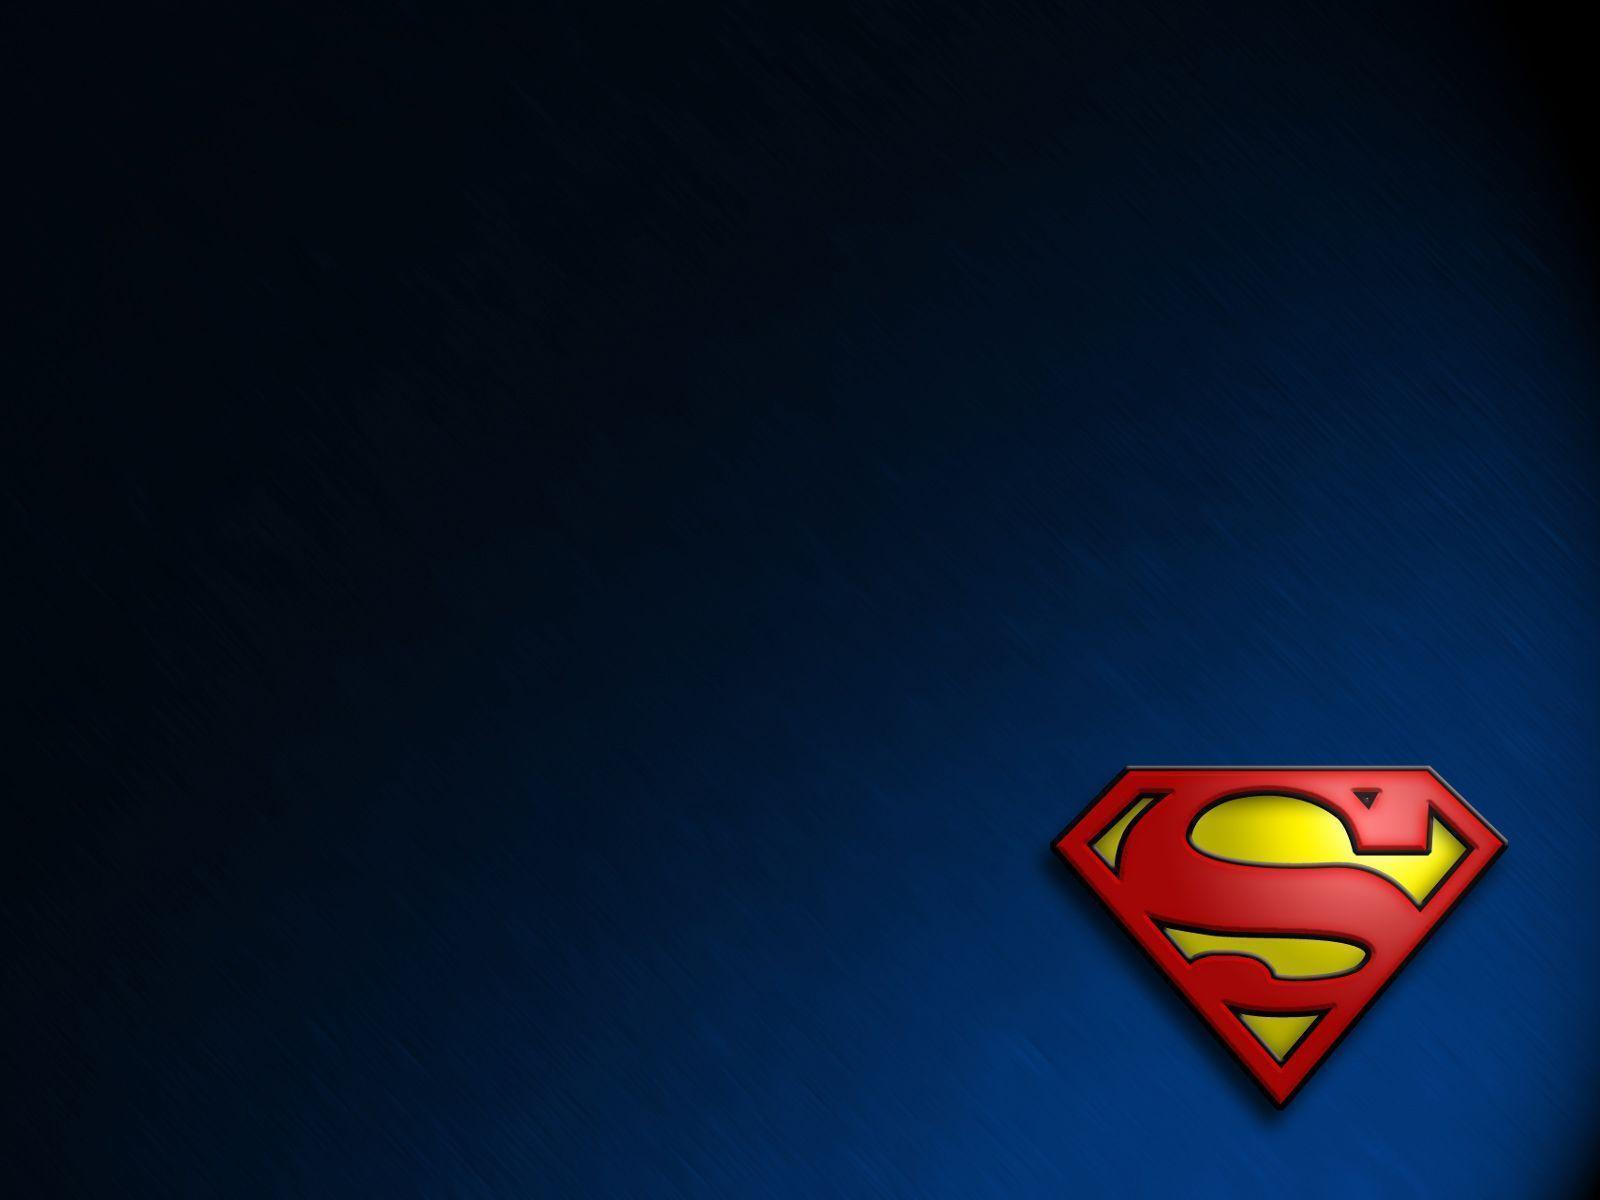 Superman Hd Wallpaper: Superman Logo Wallpapers Desktop